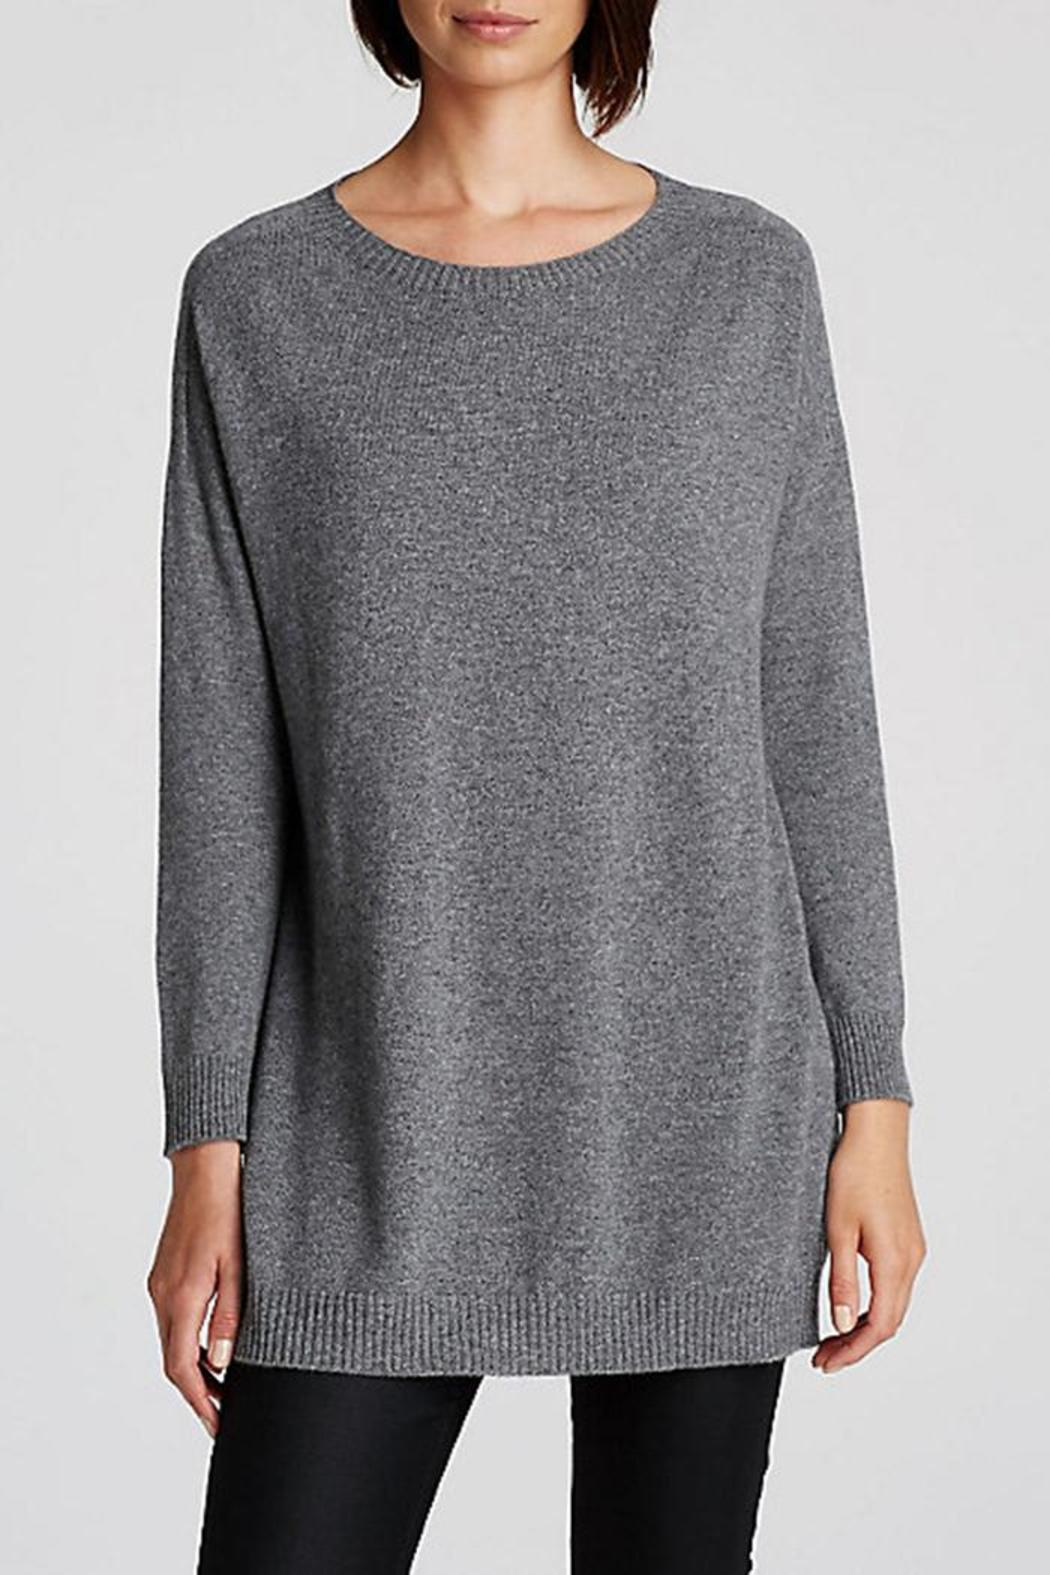 e7fa7876888f Eileen Fisher Bateau Neck Tunic from District of Columbia by The ...